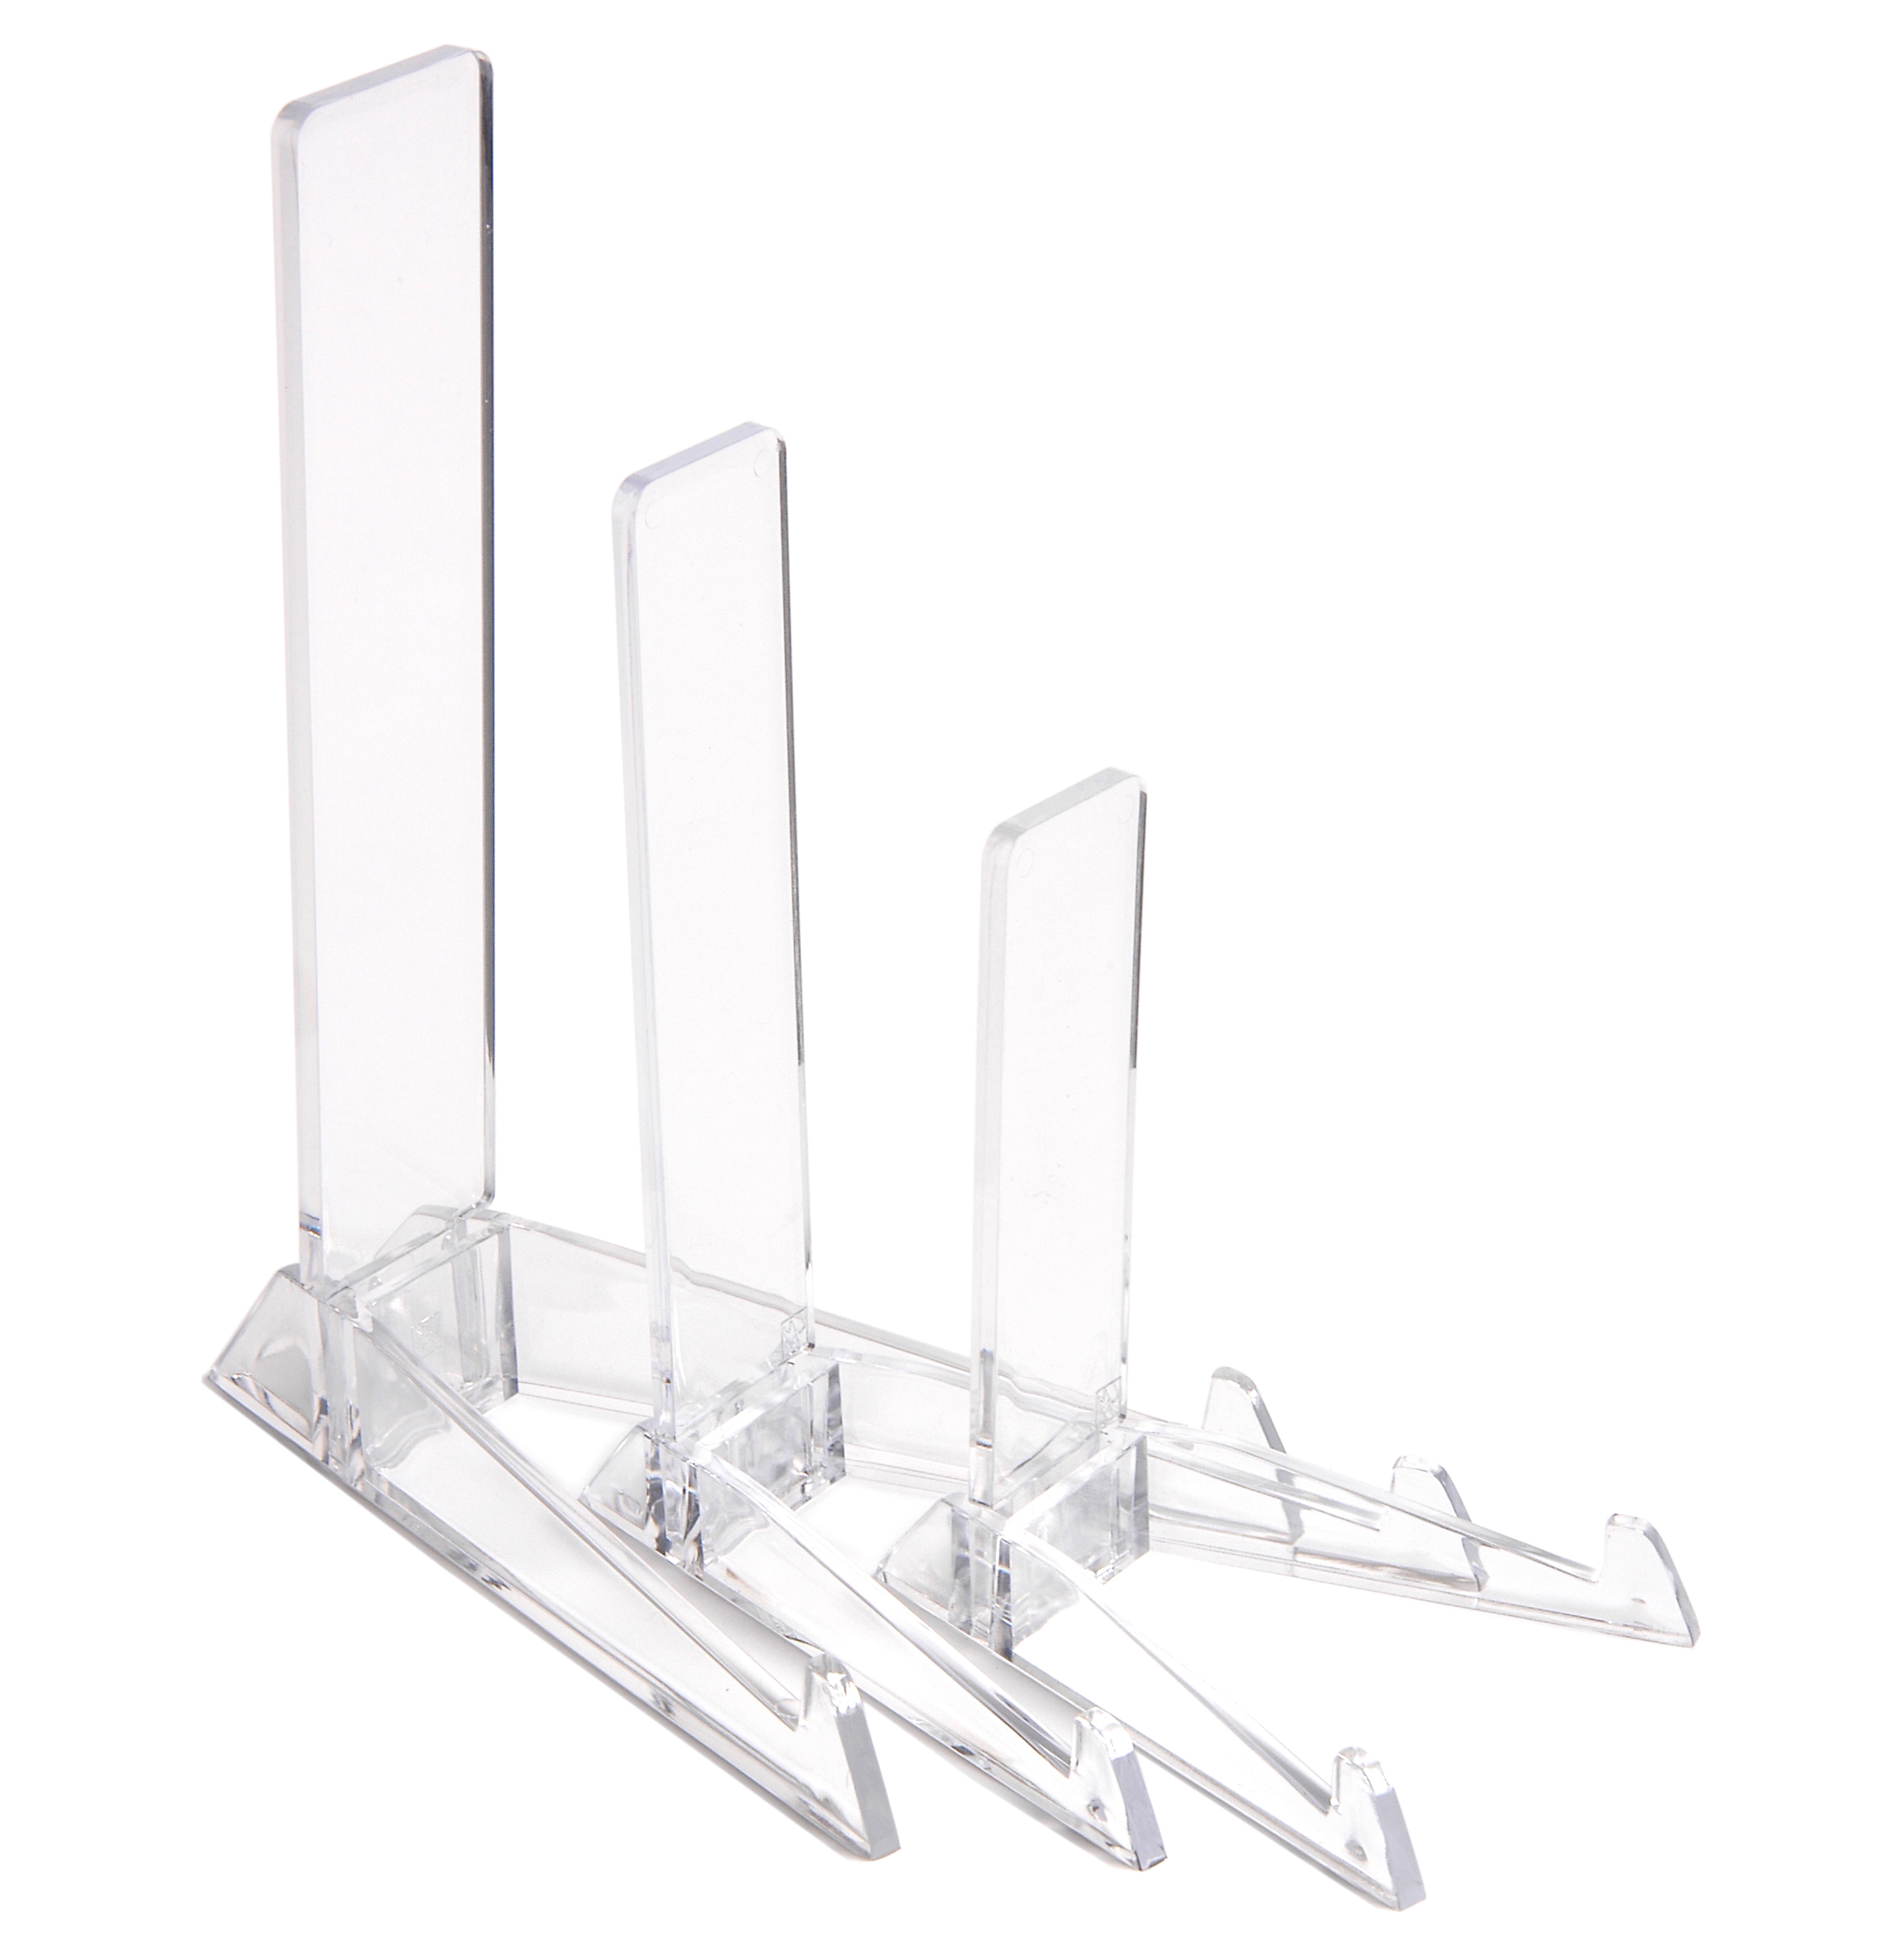 Large Plate Stand Display PlateStandcouk Products Display Stands 34  sc 1 st  Home Decor Accents & Large Plate Stand Display 41 best Display Stands images on Pinterest ...